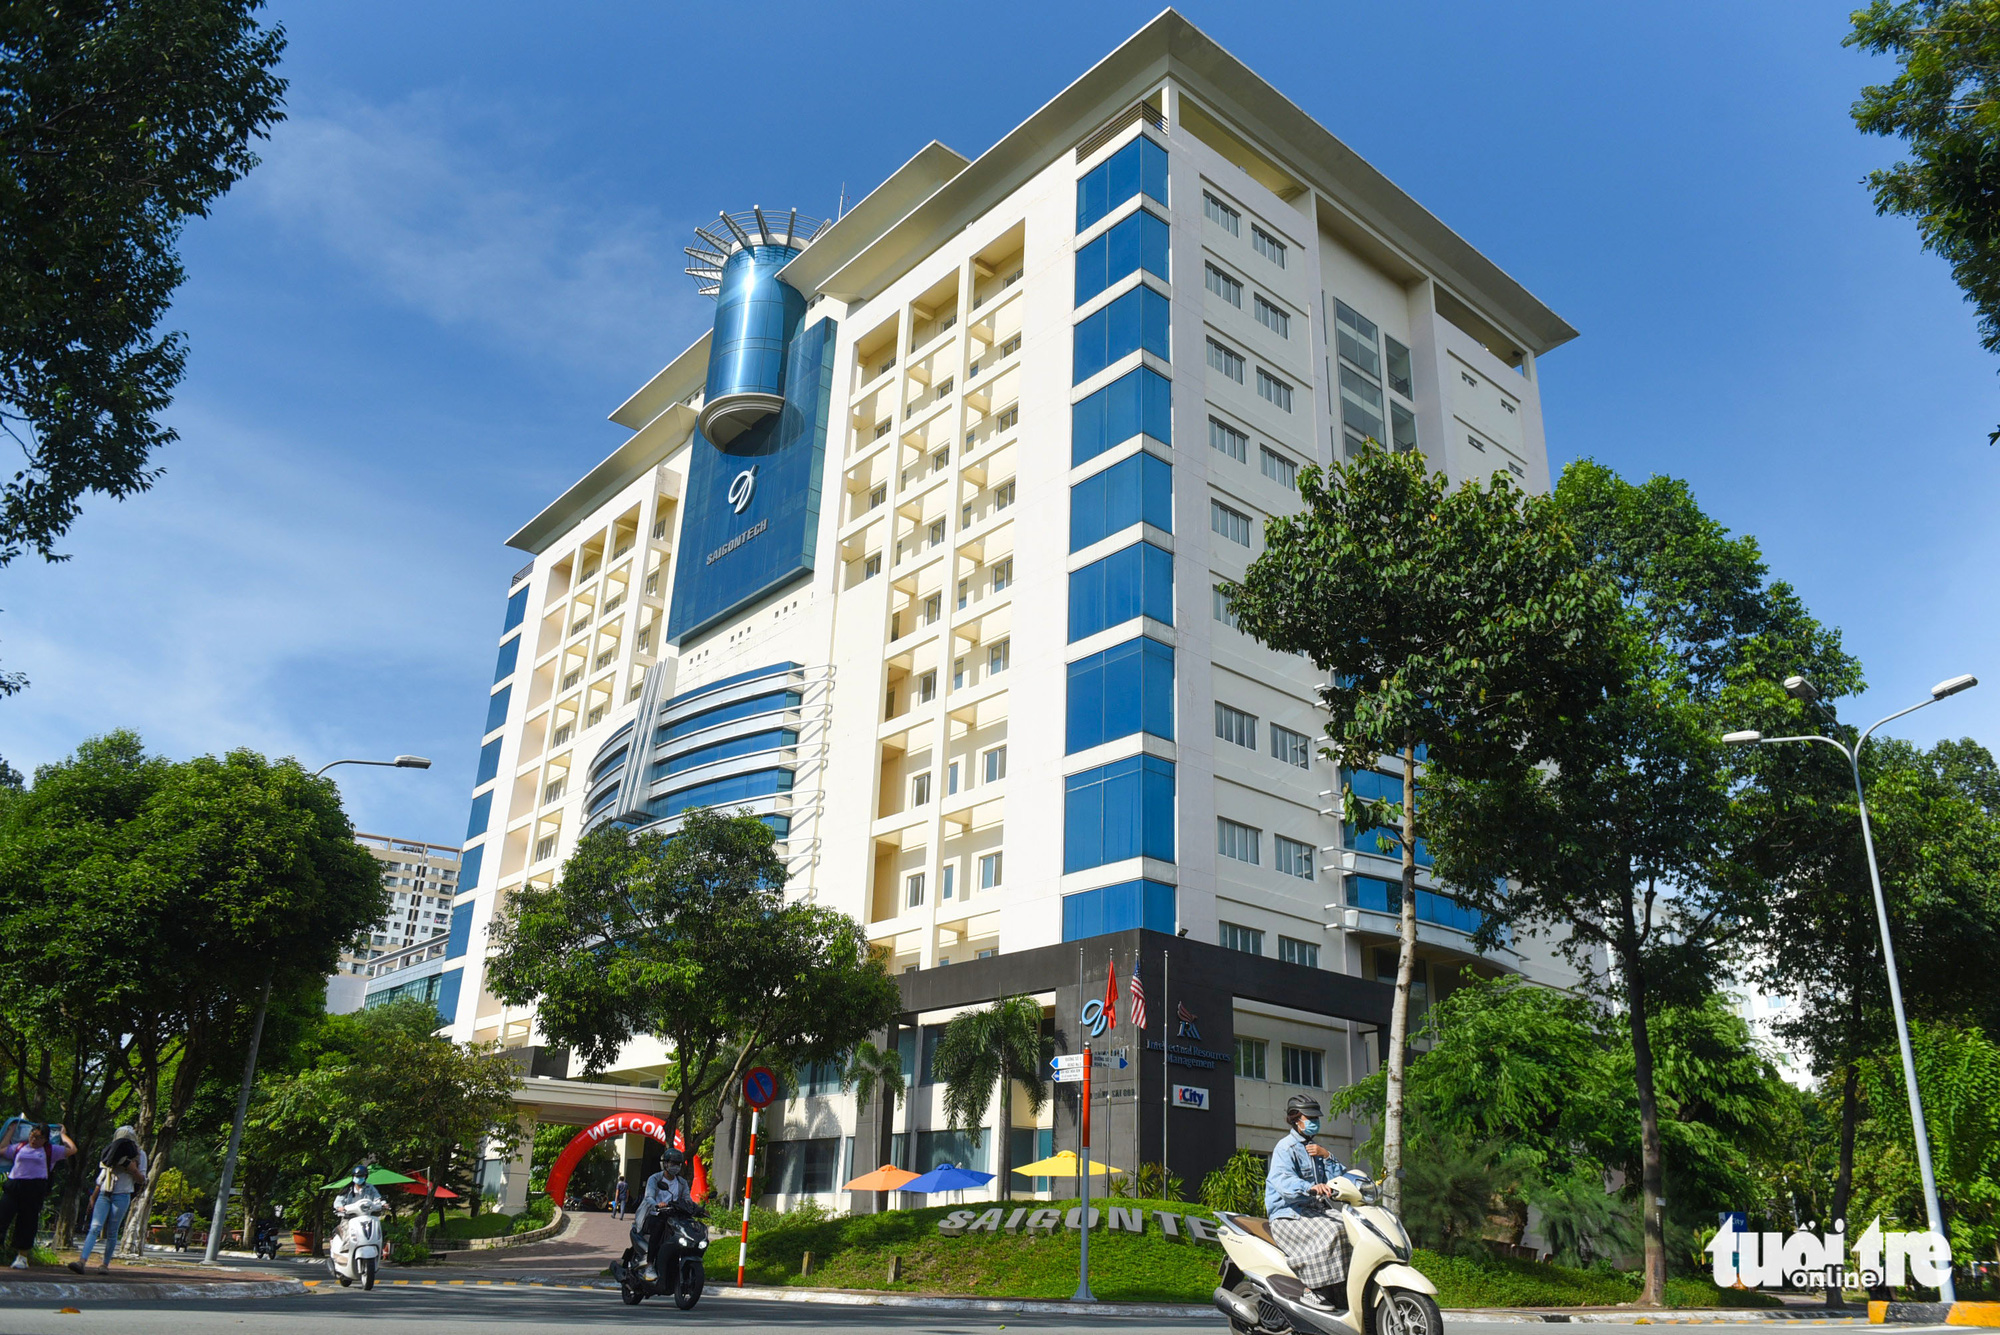 The SaigonTech School in the Quang Trung Software City in District 12, Ho Chi Minh City. Photo: Quang Dinh / Tuoi Tre